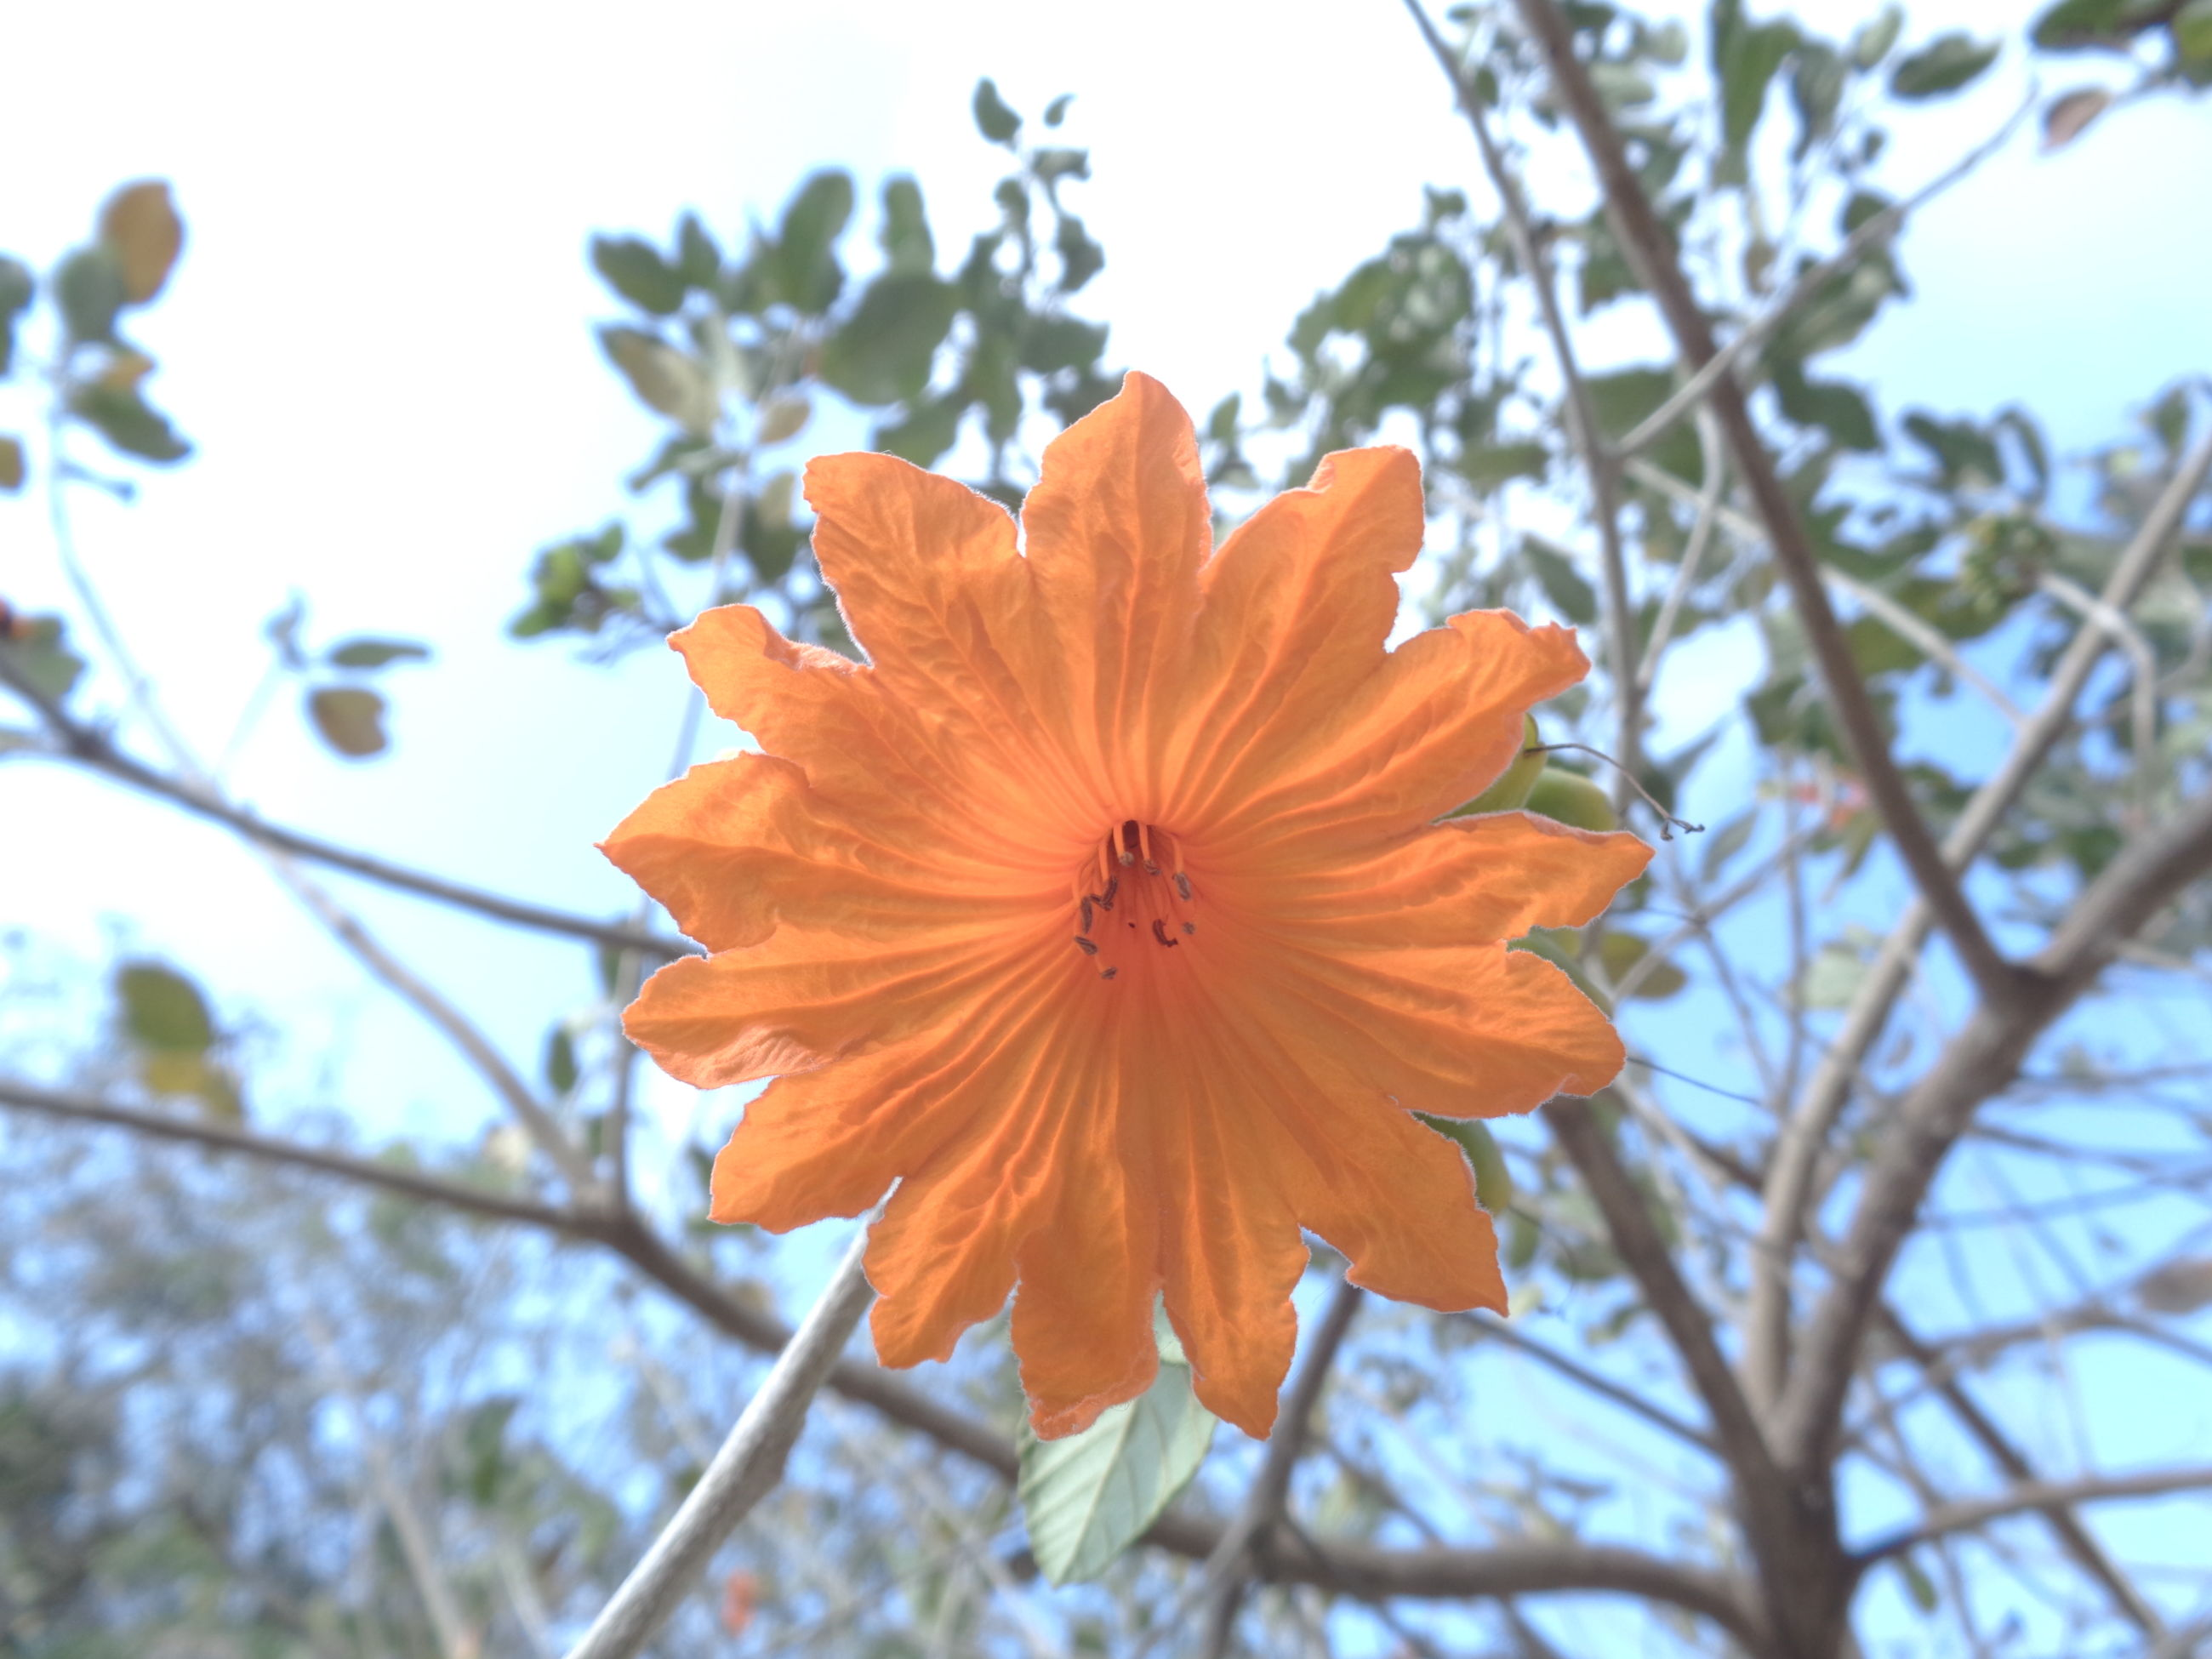 flower, petal, orange color, fragility, flower head, nature, beauty in nature, growth, freshness, springtime, no people, blooming, plant, day, low angle view, outdoors, pollen, focus on foreground, blossom, close-up, hibiscus, tree, branch, sky